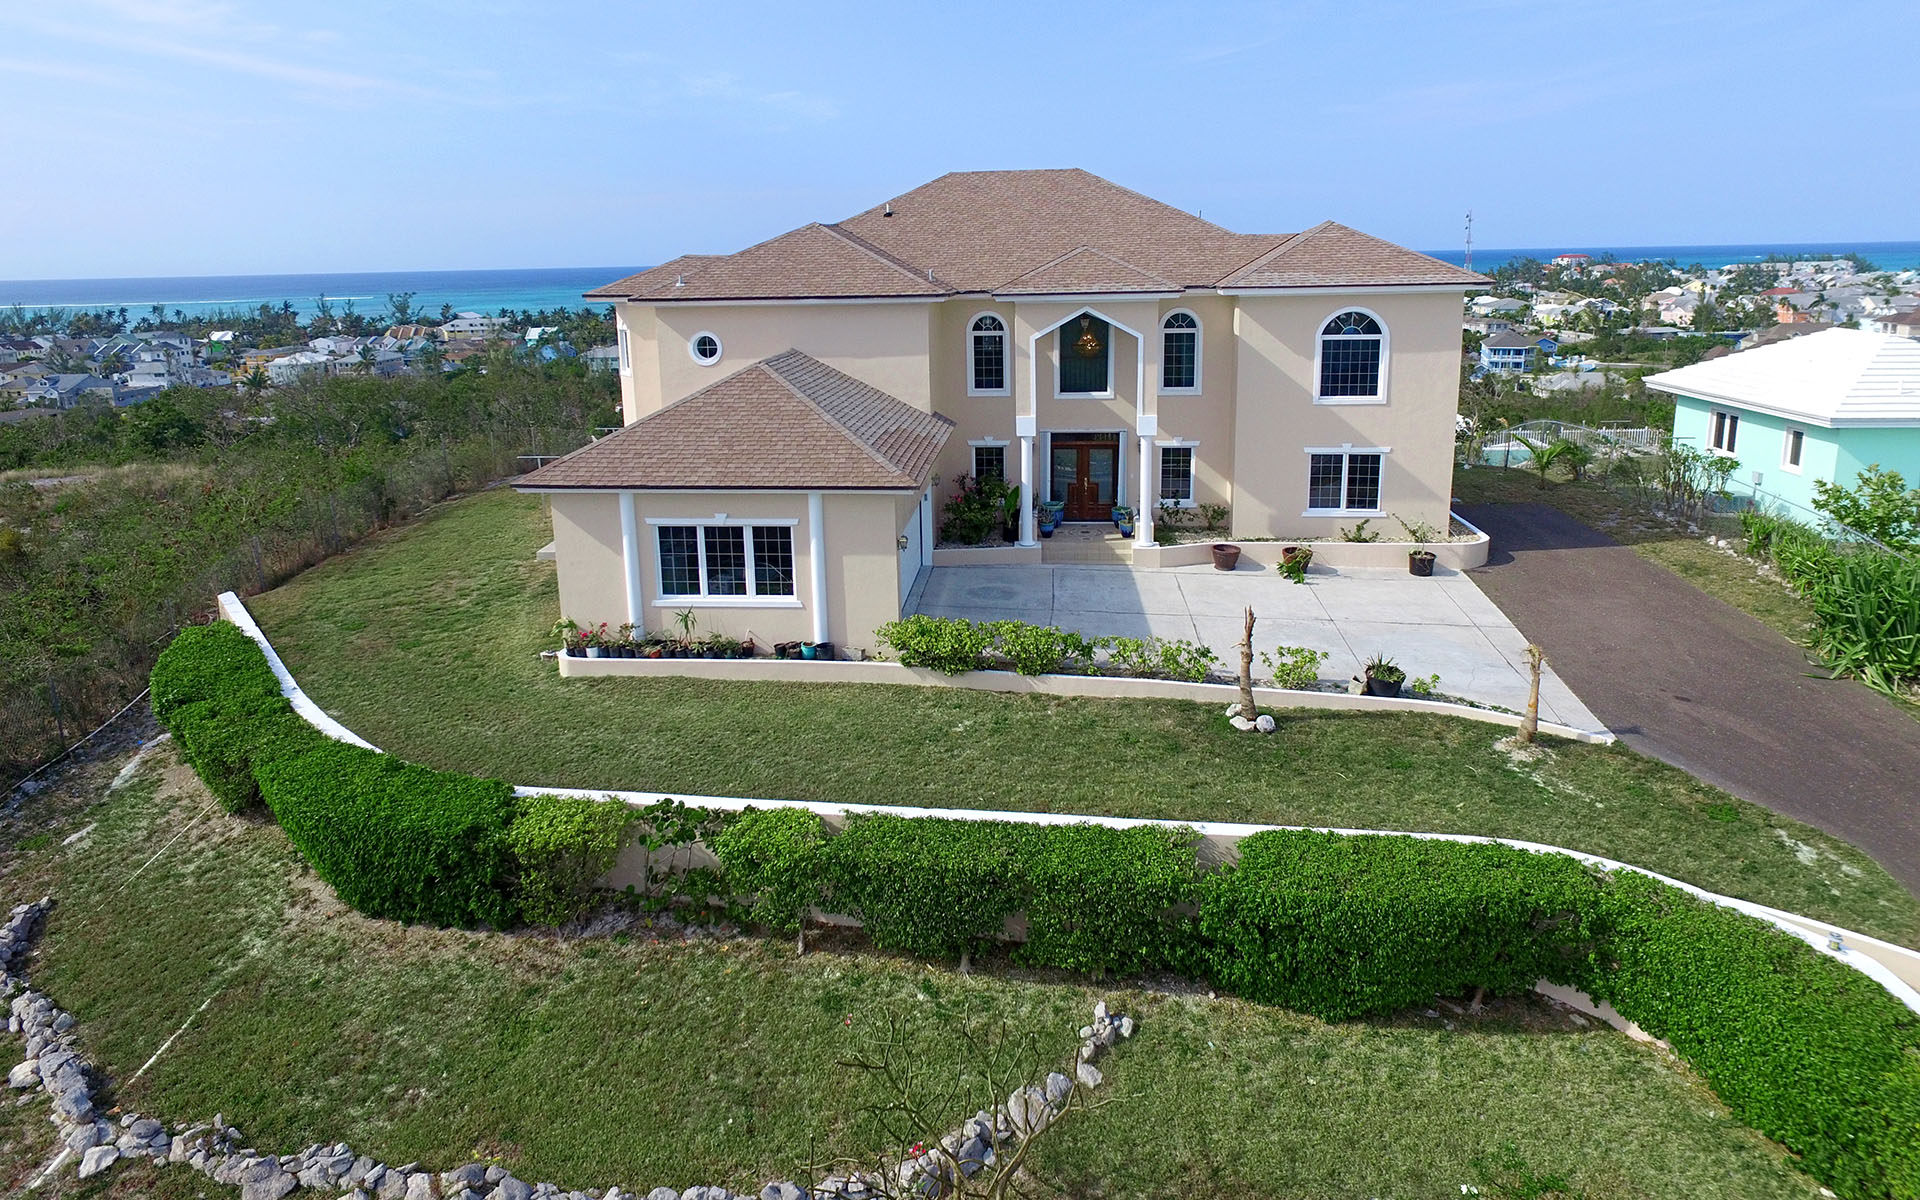 Tek Ailelik Ev için Satış at Large Oceanview Hilltop Home in Westridge MLS 27832 Nassau New Providence And Vicinity